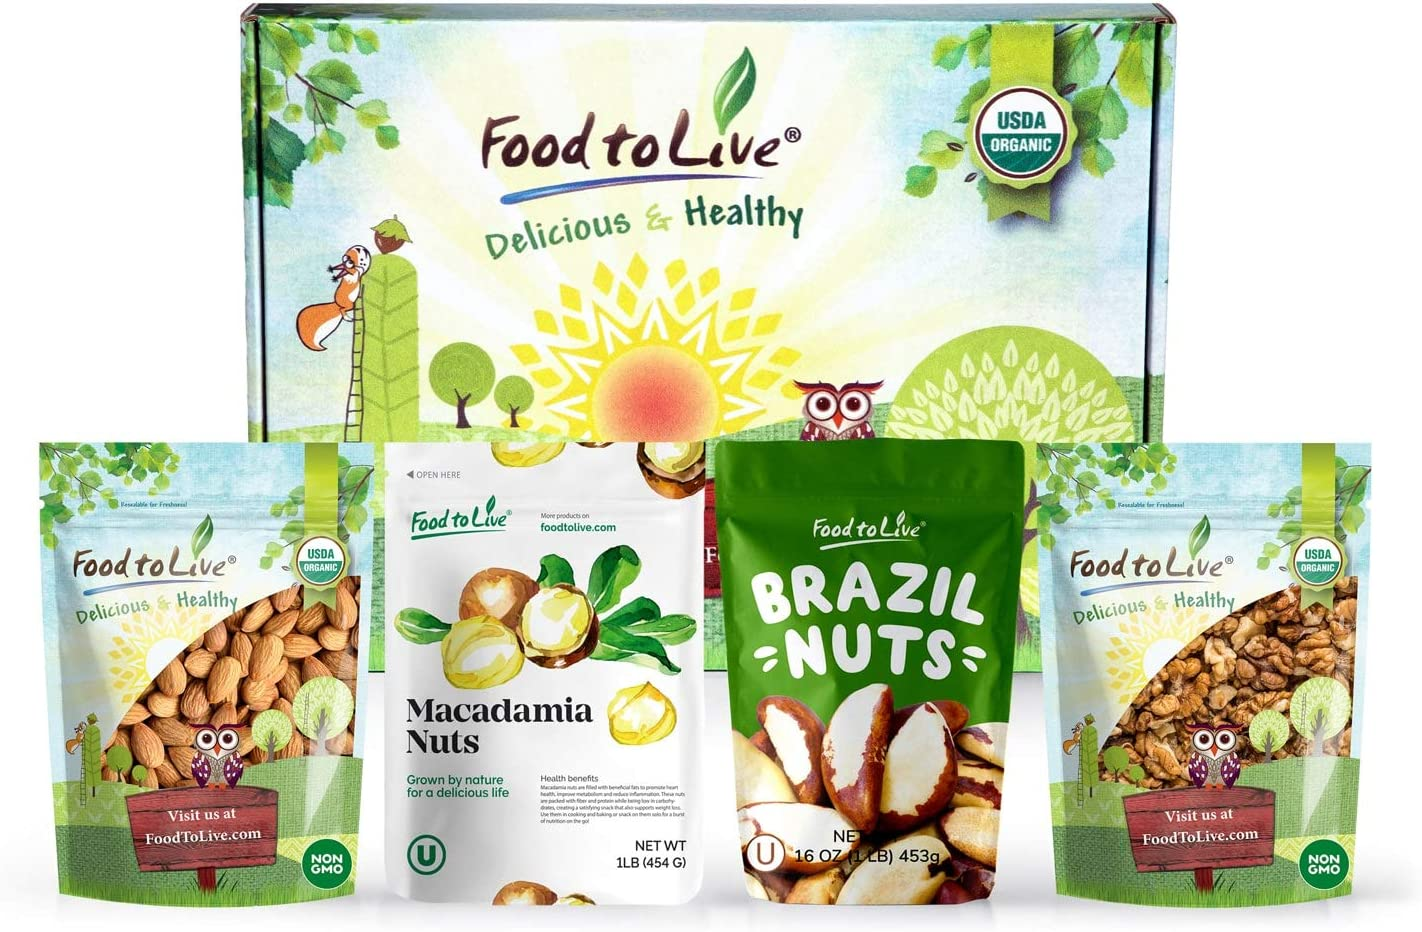 Raw Nuts in a Gift Box - Walnuts, Almonds, Brazil Nuts, and Macadamia Nuts